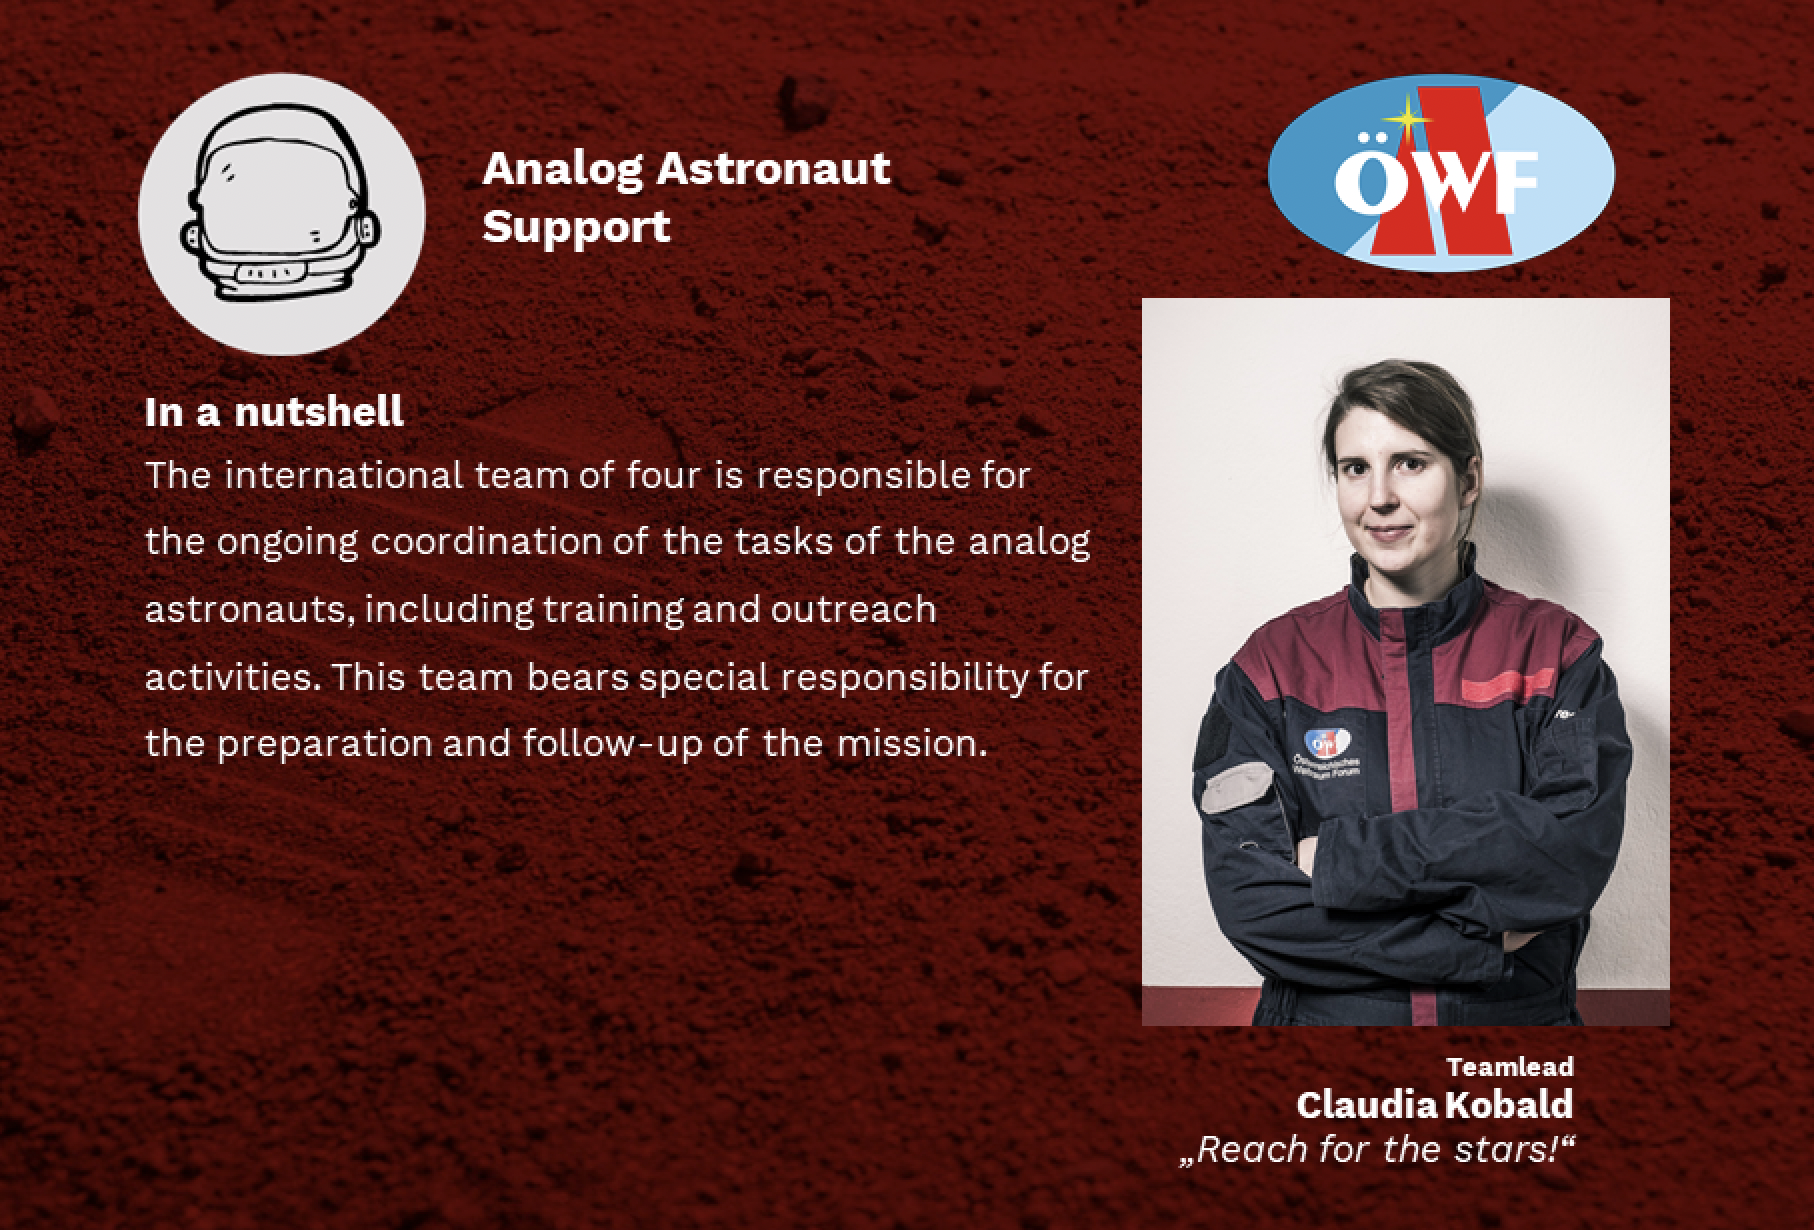 Our Analog Astronaut Support (AAS) – an introduction.